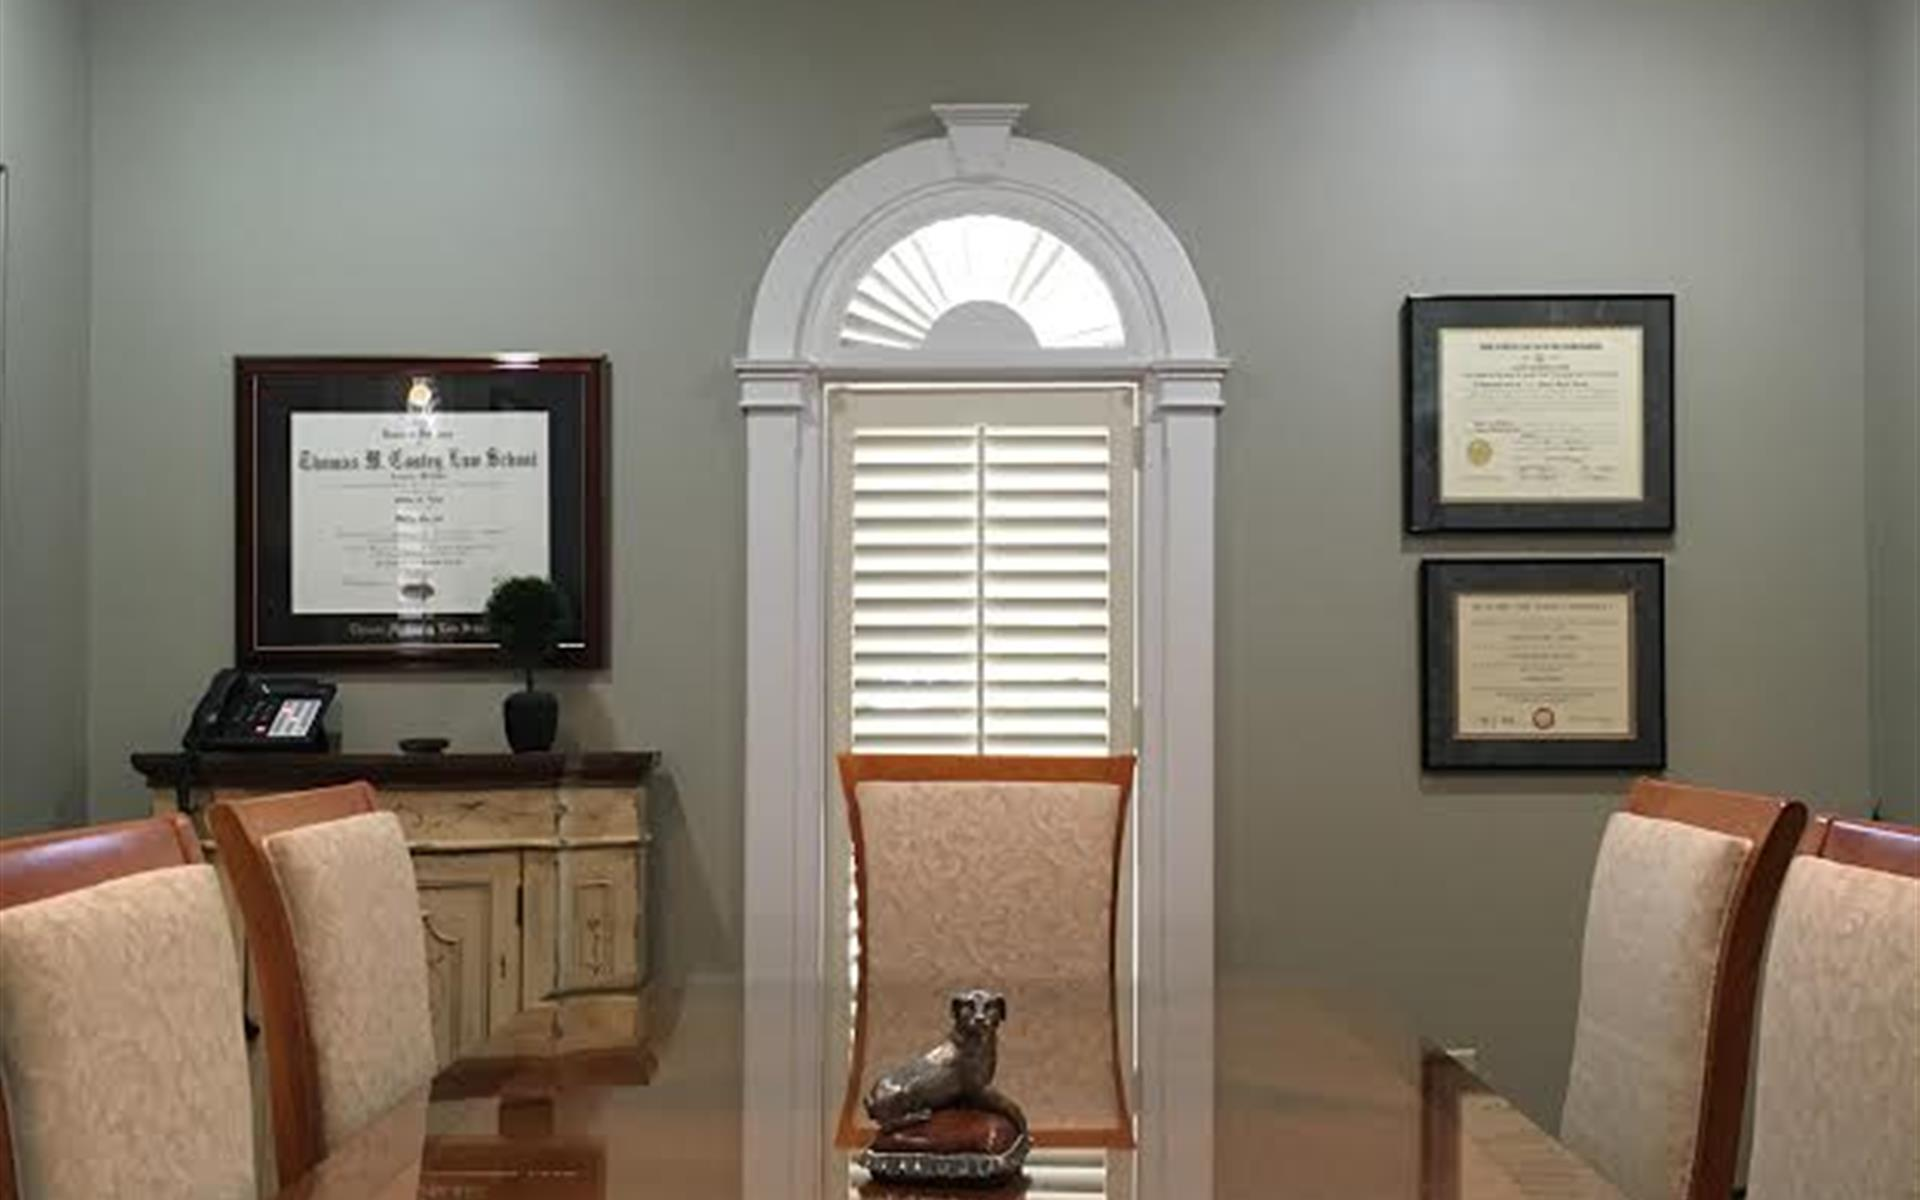 Axelrod & Associates, P.A. - Affordable, Comfortable and Classy